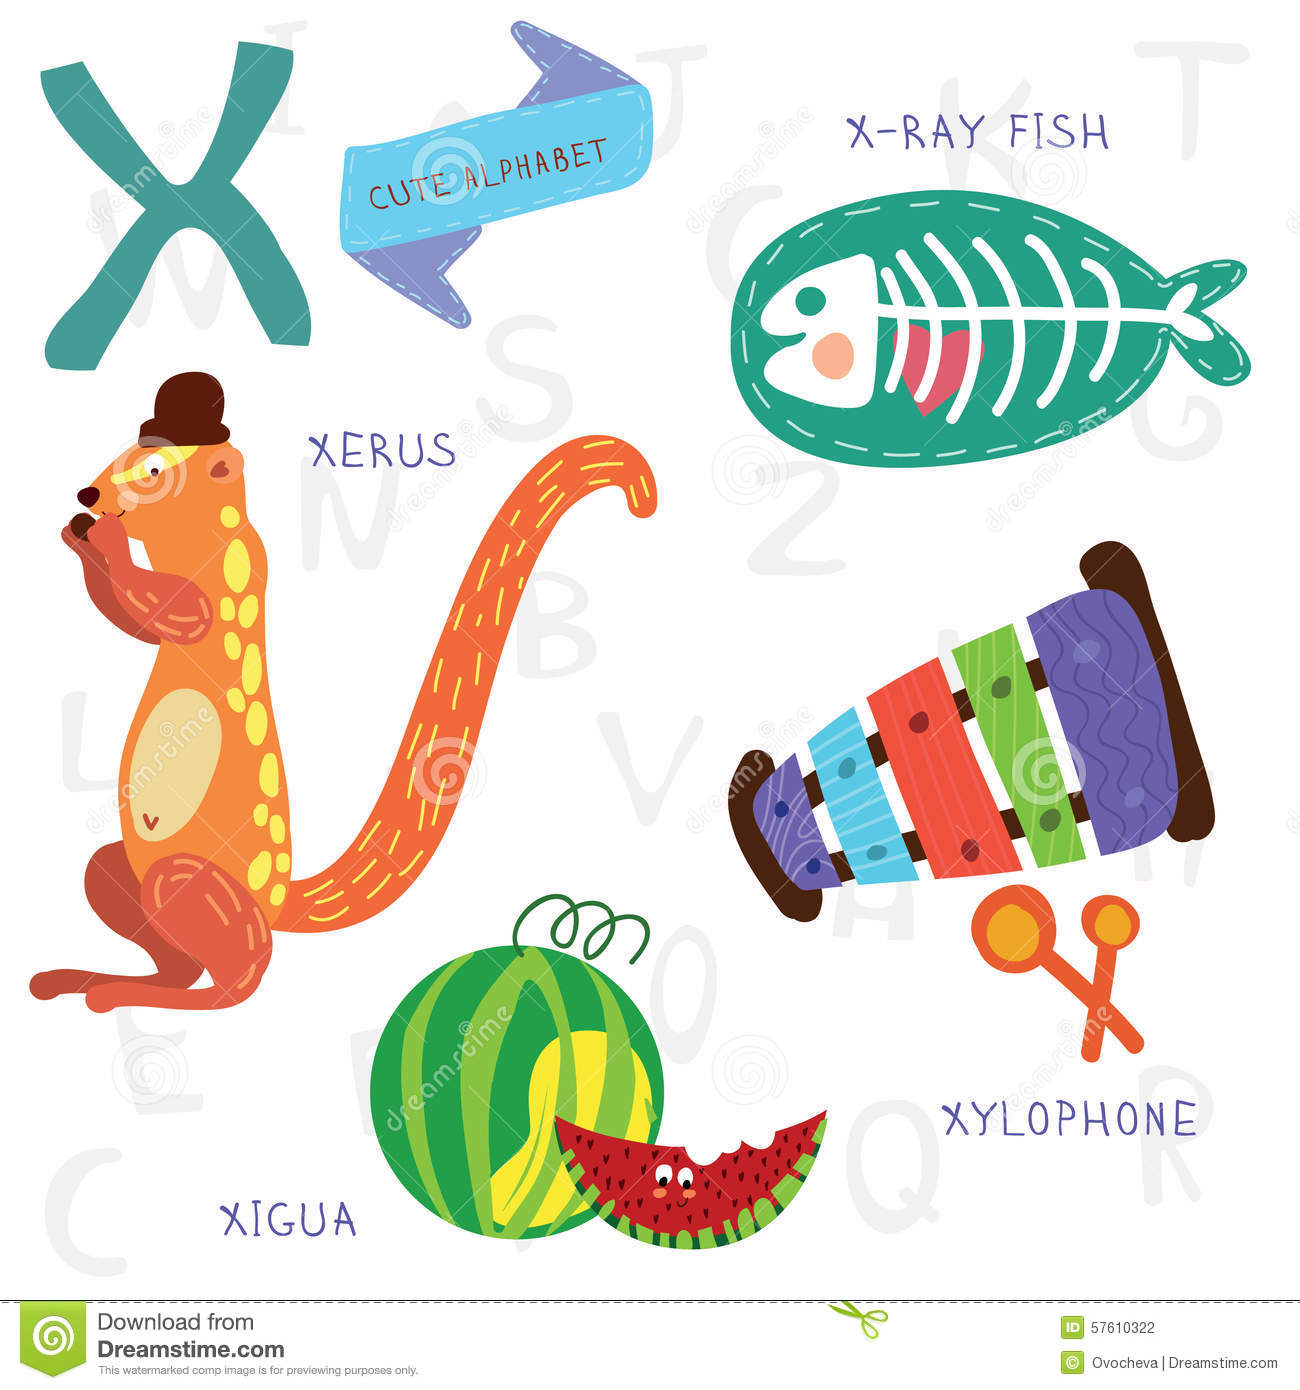 I also Alphabet Coloring Pages Letter M X together with Image Width   Height   Version in addition Very Cute Alphabet X Letter Xerus X Ray Fish Xylophone Xigua Design Colorful Style in addition Printable Zentangle Patterns For Beginners Colouring Pages Free Coloring Worksheets Pattern Download Style Sheets S Instructions. on letter z worksheets book